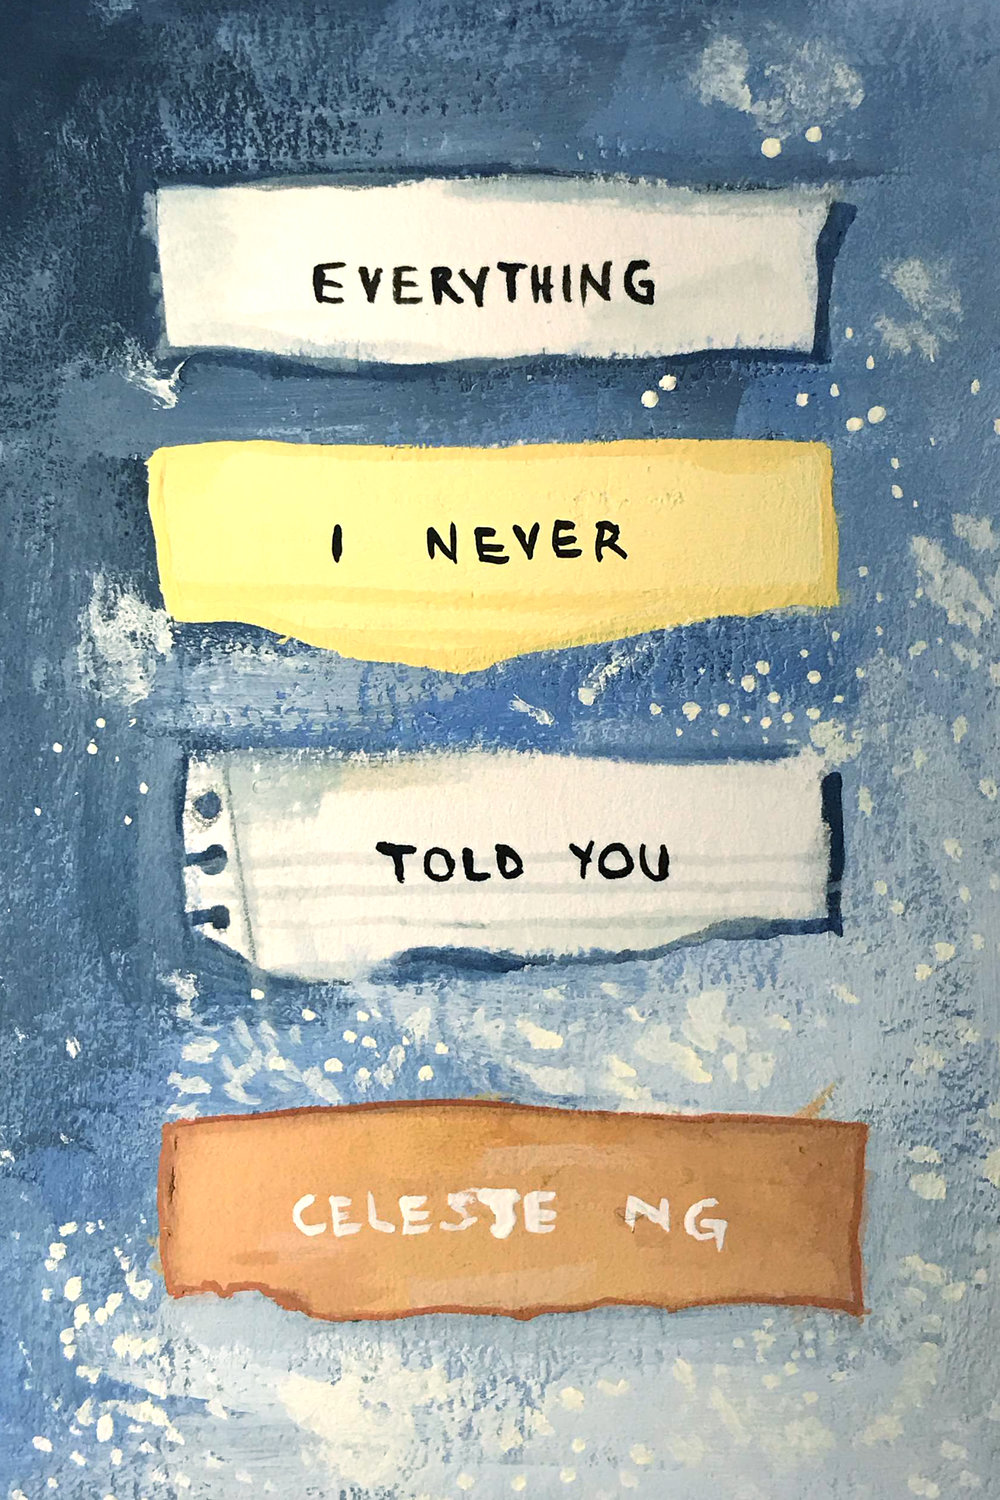 Everything I never Told Youby Celeste Ng - (Audible | Amazon)A profoundly moving story of family, history, and the meaning of home, Everything I Never Told You is both a gripping pause-resister and a sensitive family portrait, exploring the divisions between cultures and the rifts within a family and uncovering the ways in which mothers and daughters, fathers and sons, and husbands and wives struggle, all their lives, to understand one another. (Audible summary)I loved, loved, this book. This may be because I am biracial and I have lost a sibling and therefor I gravitate towards stories similar to my own (spoilerrrrr, except not really because death is addressed in the first line of this book), but it is more likely I enjoyed this novel because Everything I Never Told You is an expertly crafted story dripping with emotion. And I mean dripping. As in your eyes will pour water and your tears of happiness/sadness/grief/what-have-you will mark the pages forever. Okay, I'm being a tad overdramatic…but all I'm trying to say is that this book is phenomenal and will have you sobbing.Everything I Never Told You broke my heart, repaired it, and broke it again. And yet I know this is a story I will return to every year, as I have never read prose that has moved me in such a way. I cannot recommend it enough.